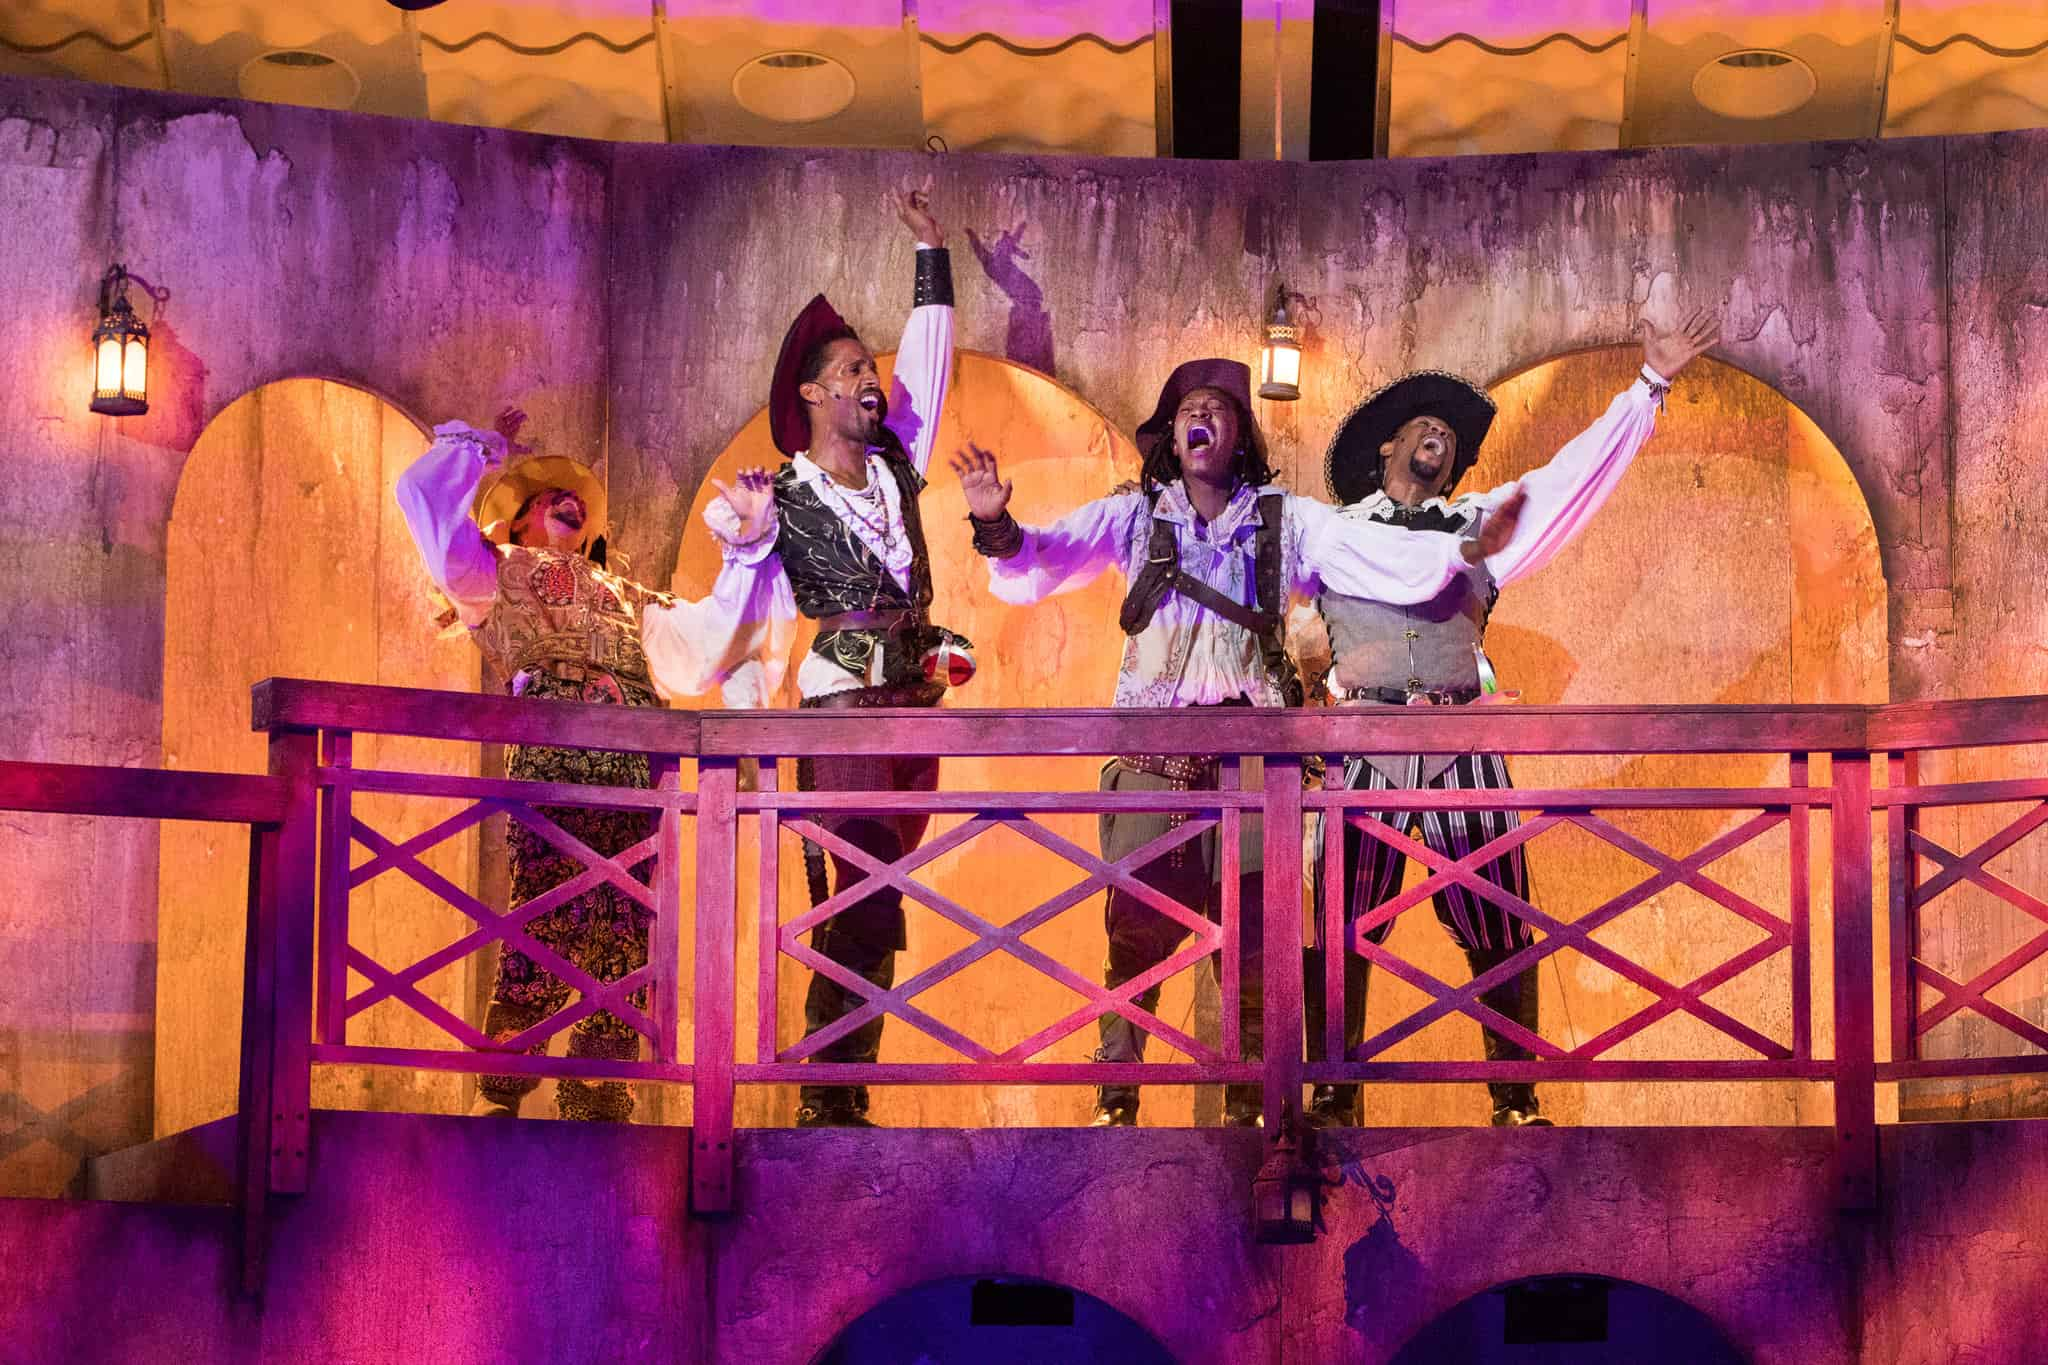 The Three Musketeers by The Classical Theatre of Harlem